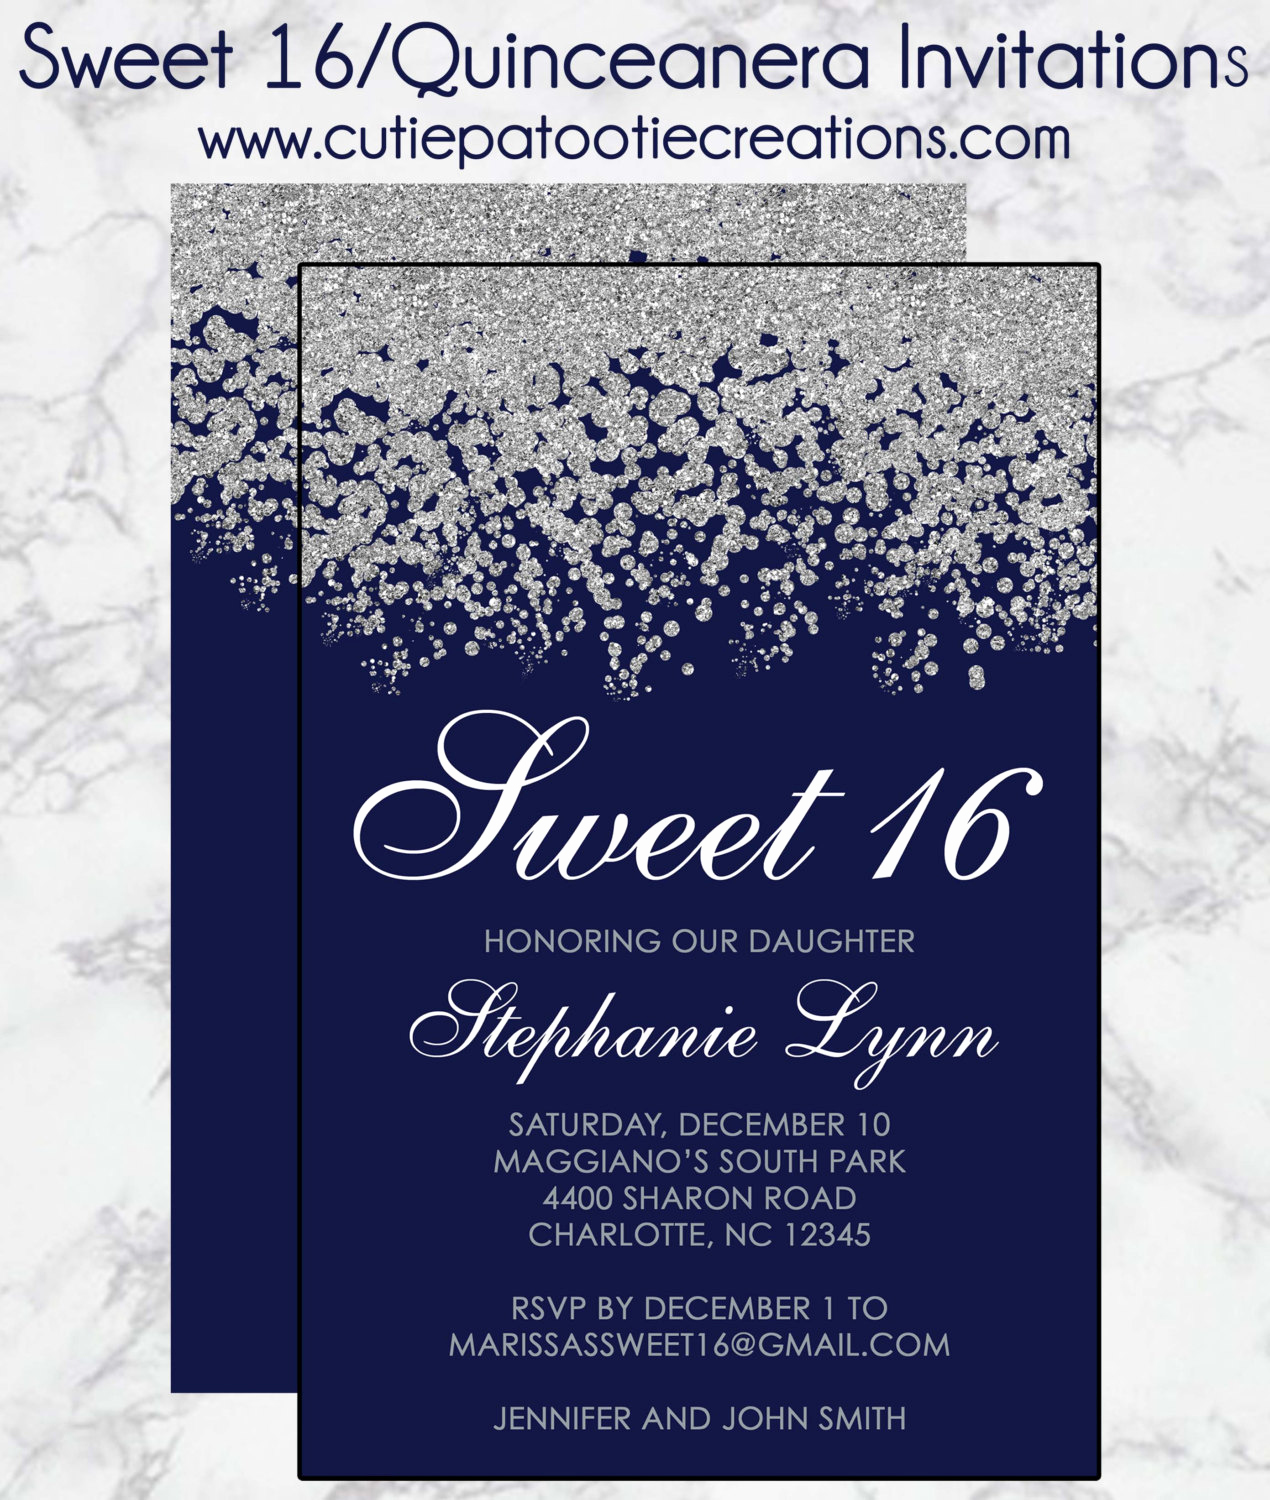 Sweet 16 Invitation Wording Lovely Sweet 16 Birthday Invitations Quinceanera Invitation Navy